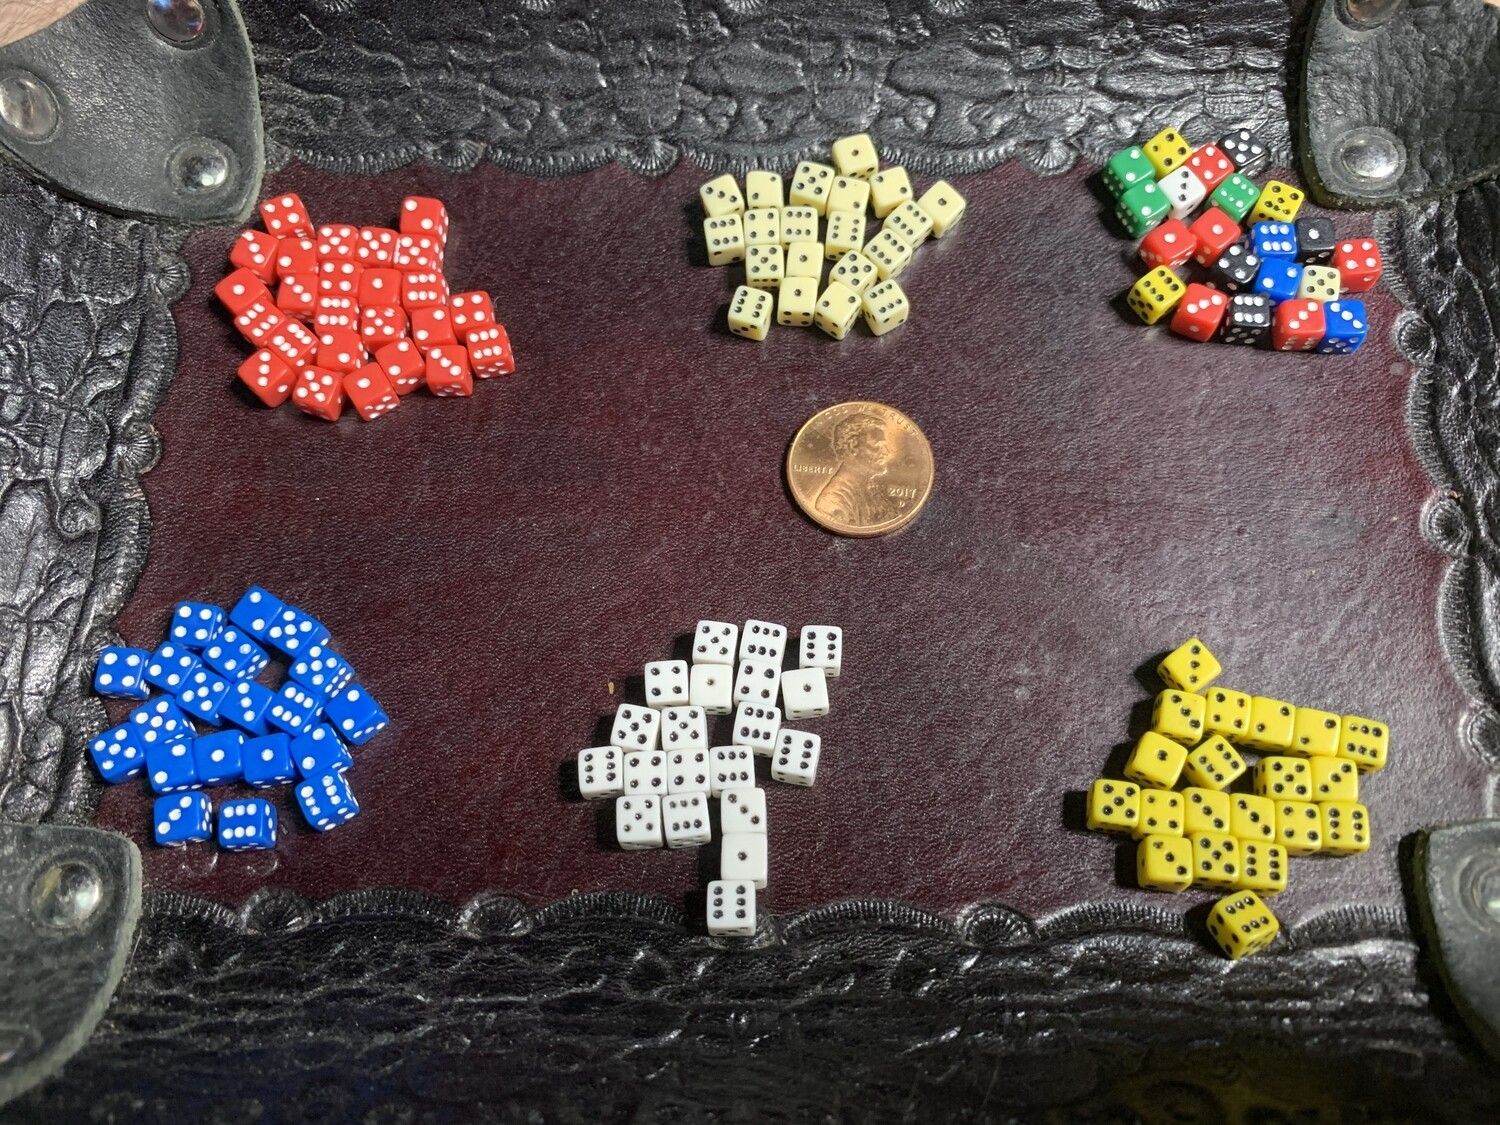 Your Color Choice - Twenty 5MM Gaming Dice Square Corner RPG Tabletop Gaming CCG Tokens